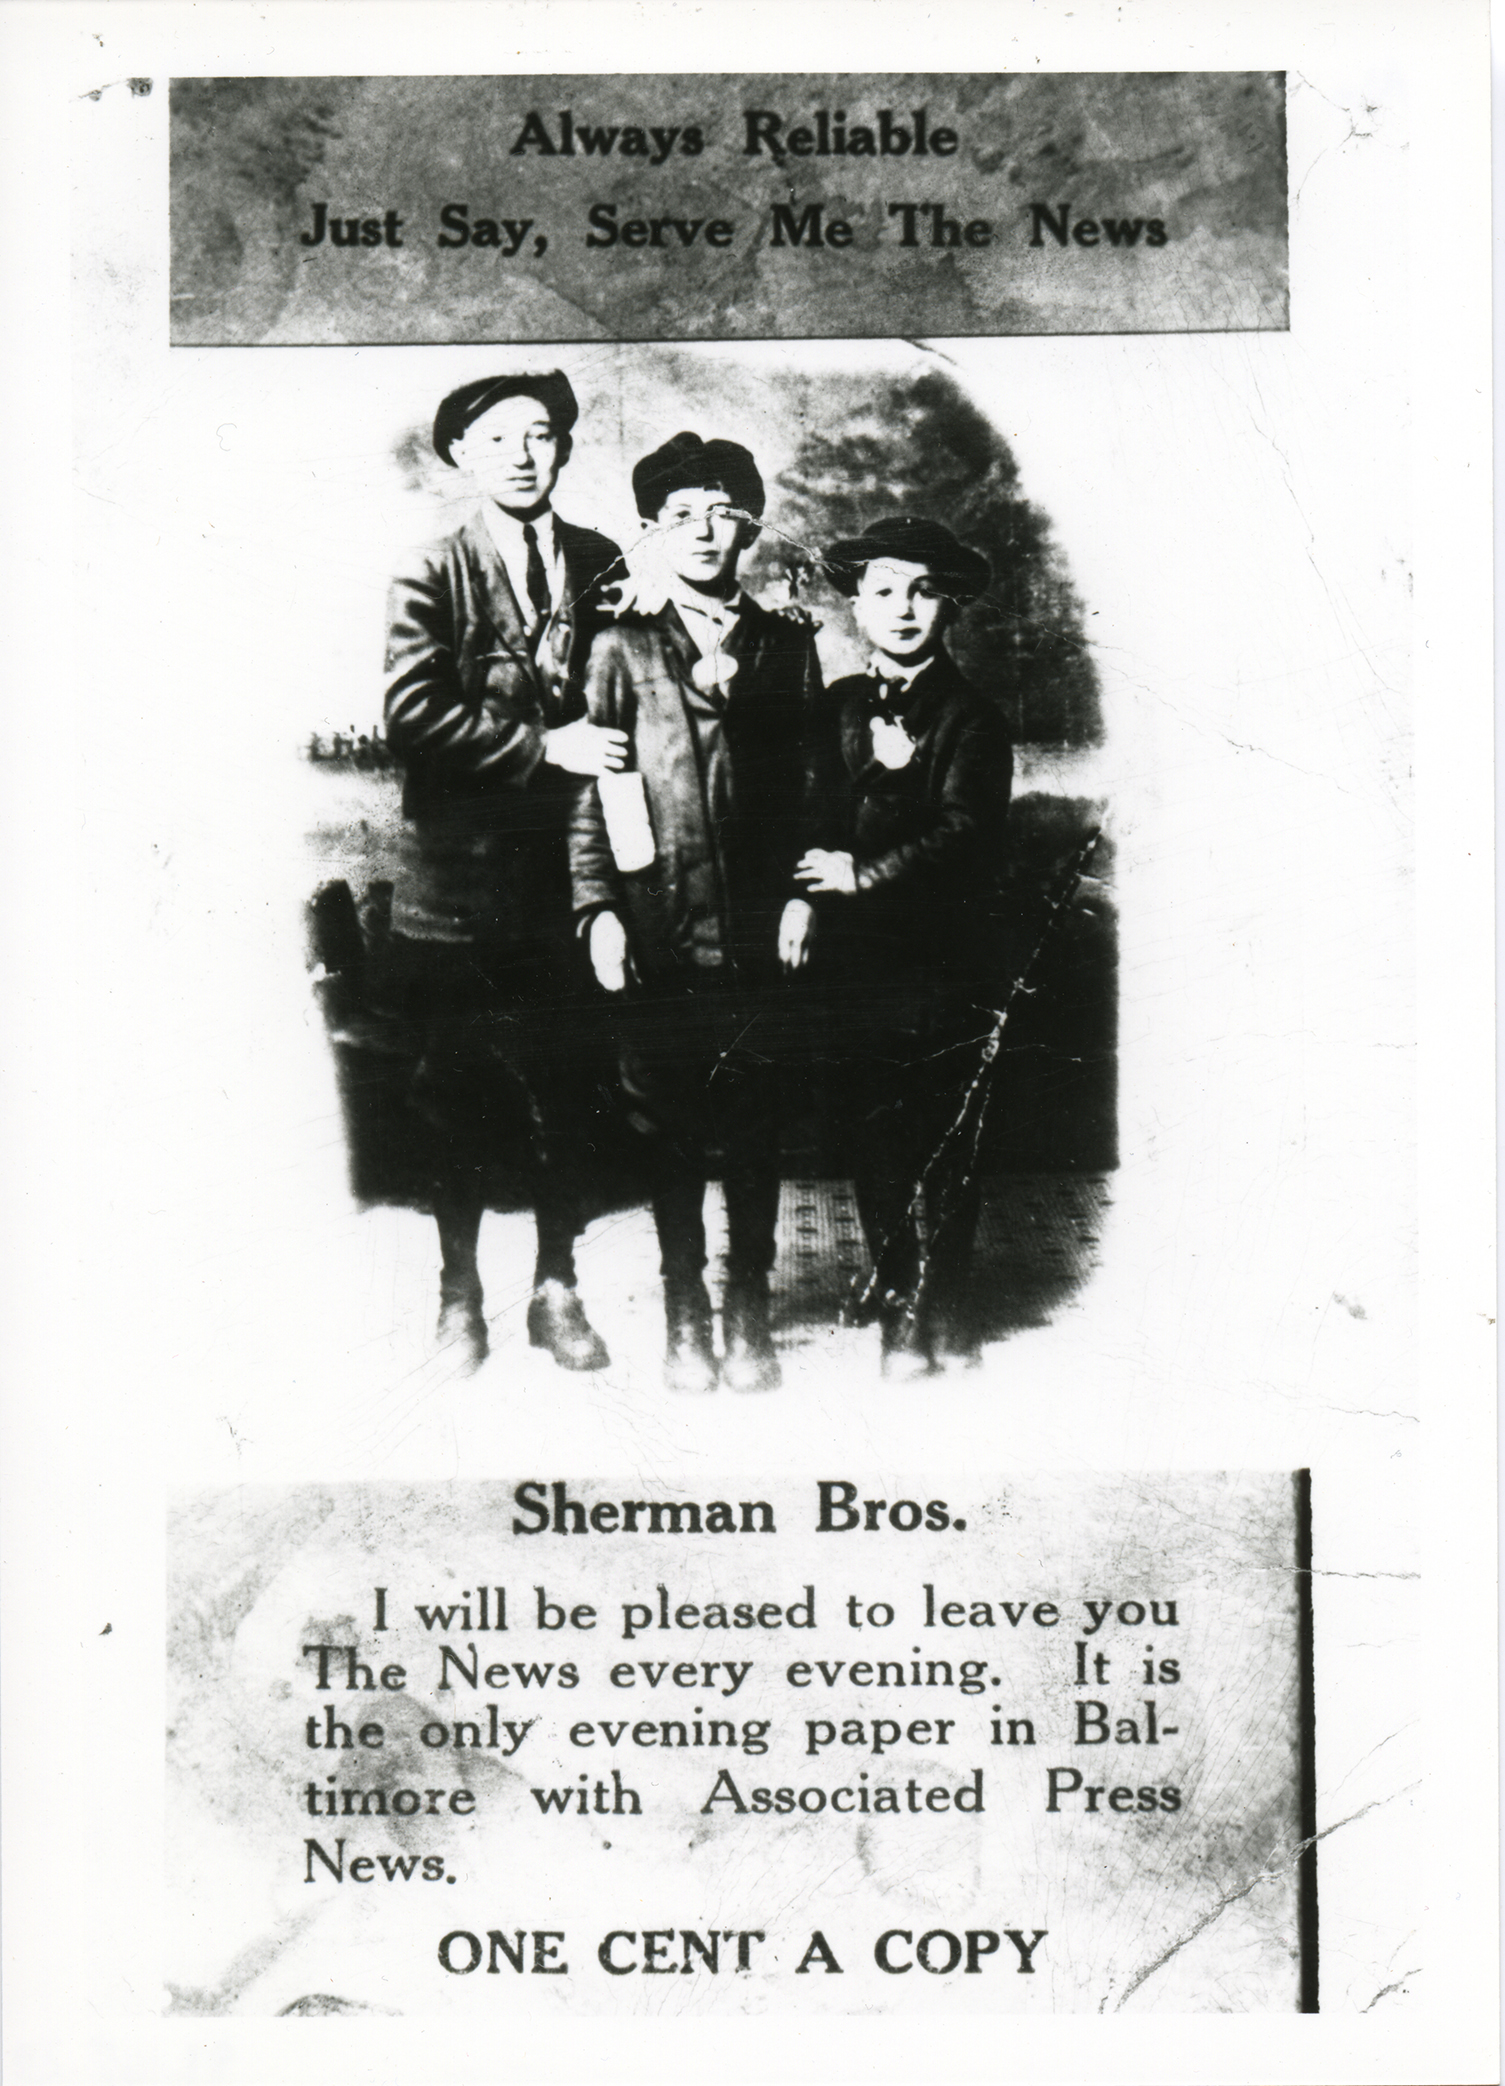 Abe Sherman and his brothers began selling newspapers as boys. Graphic courtesy of the  Jewish Museum of Maryland , JMM 1988.165.2b